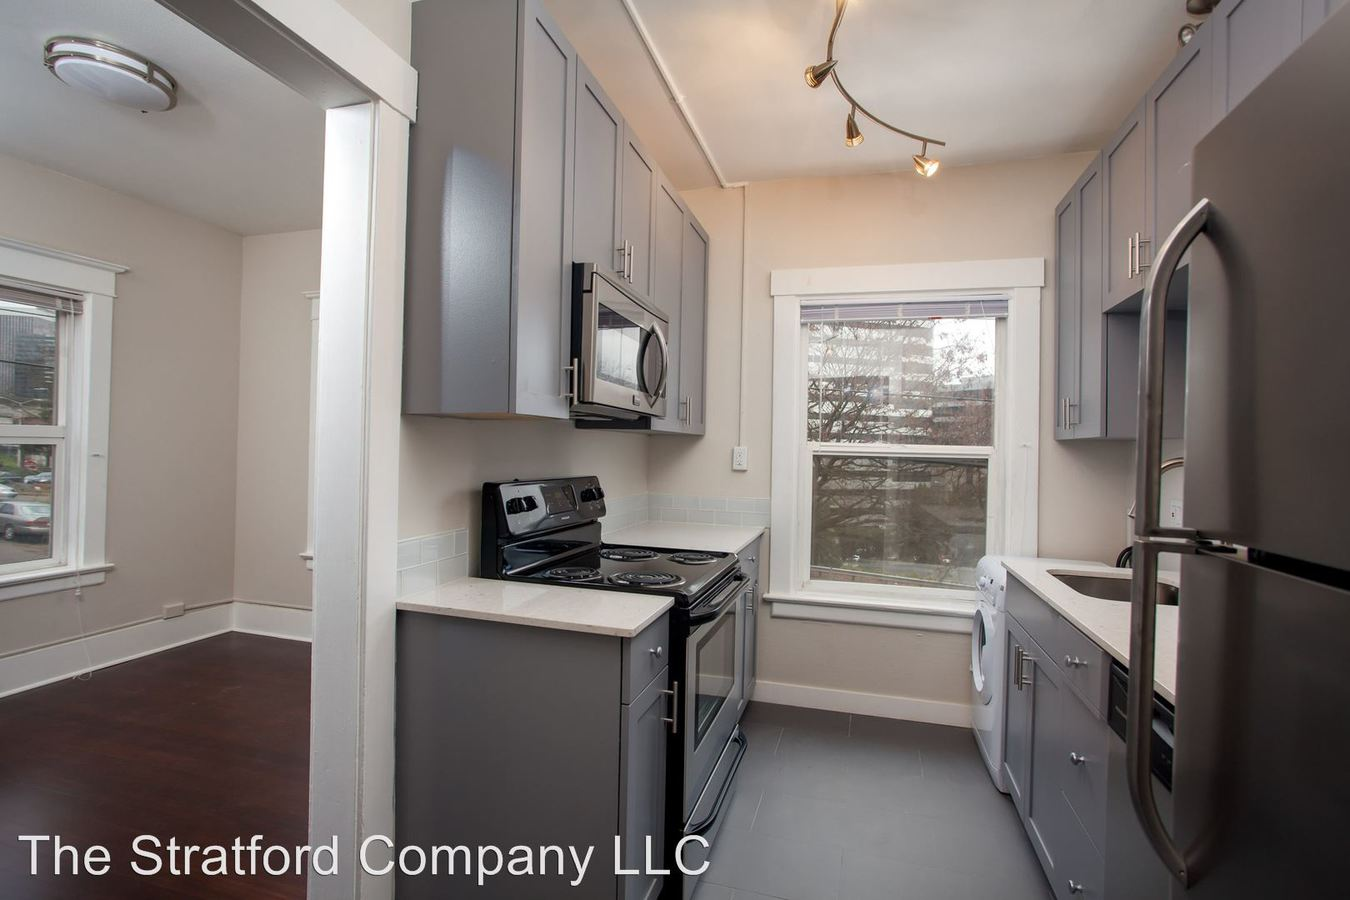 2 Bedrooms 1 Bathroom Apartment for rent at 304 E Olive Place in Capitol Hill Seattle, WA